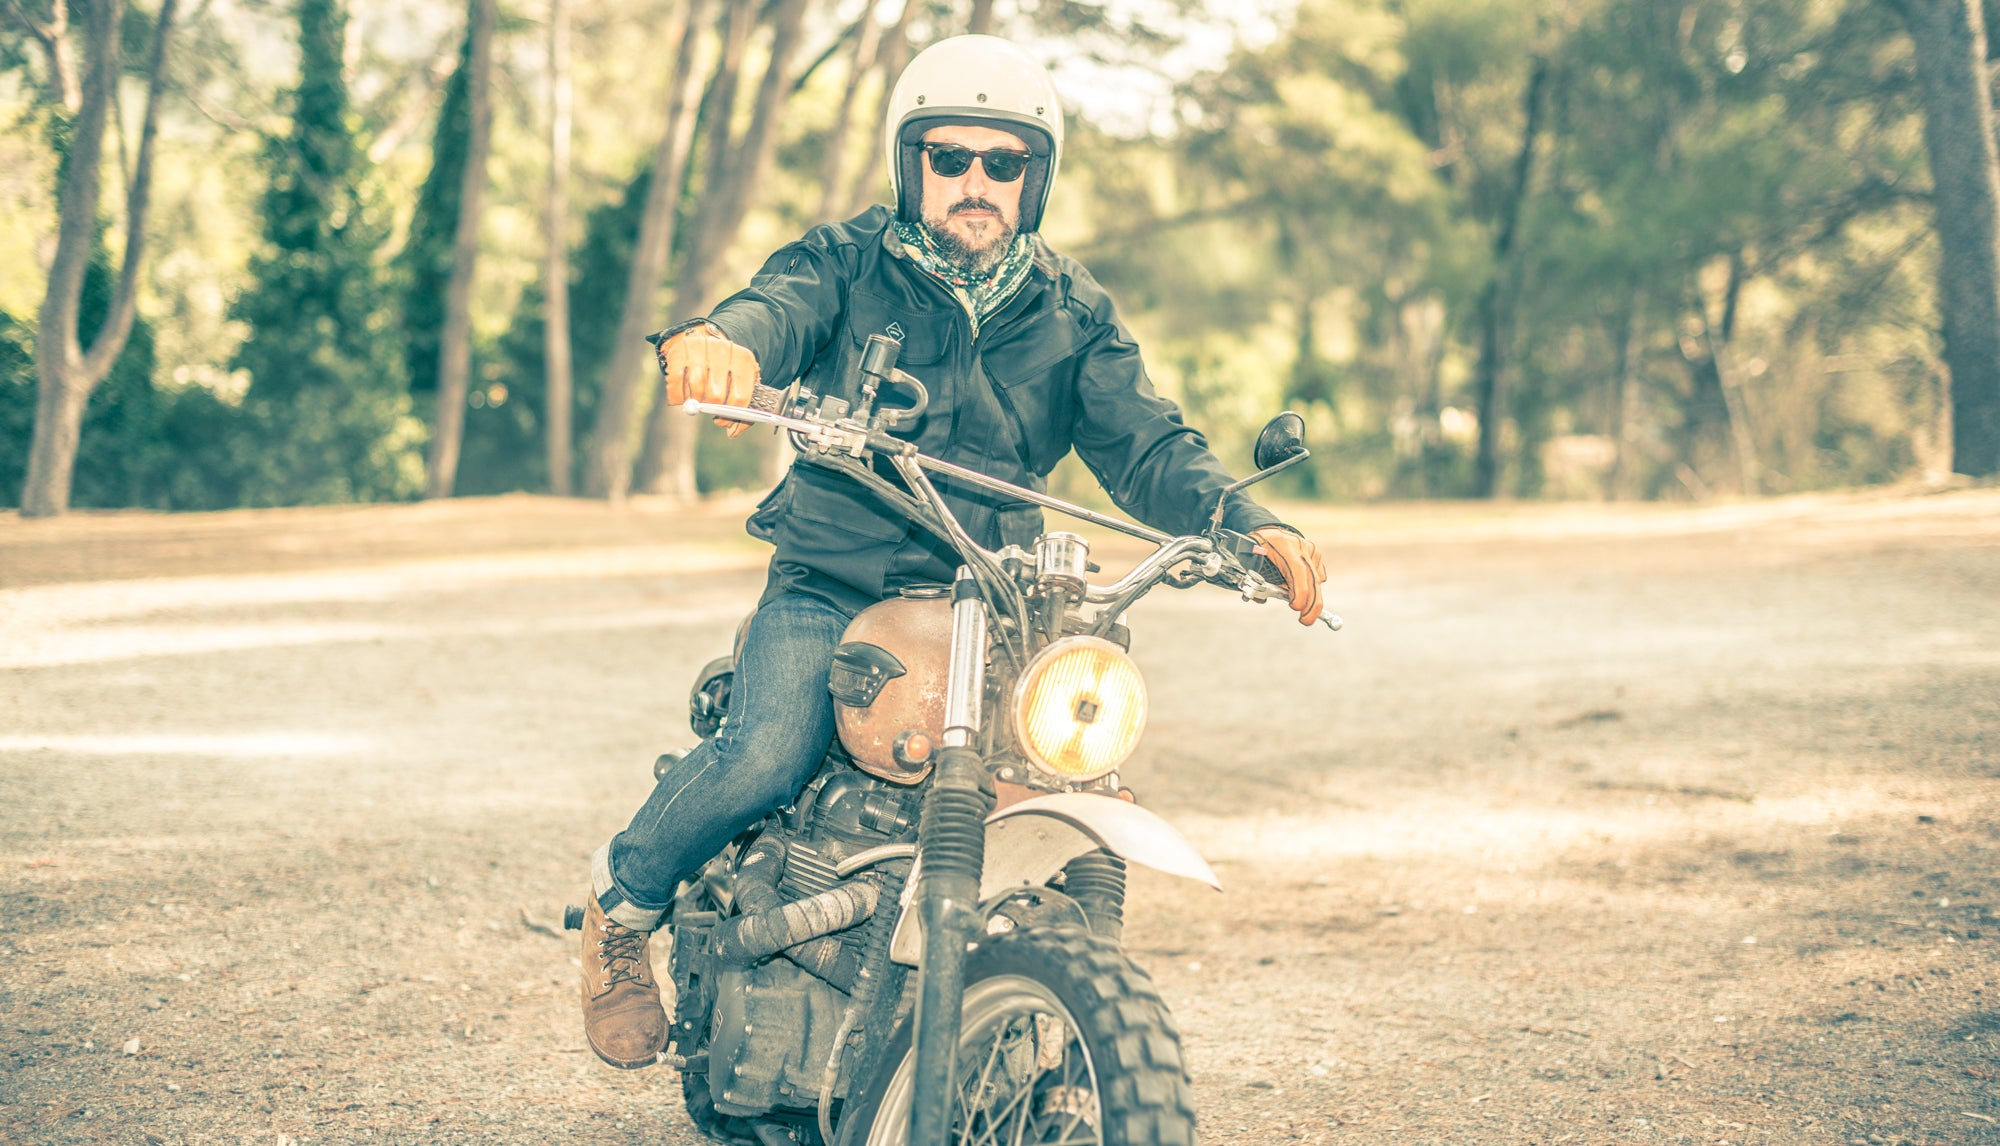 Waxed Trophy Jacket - motorcycle Armalith armour jacket